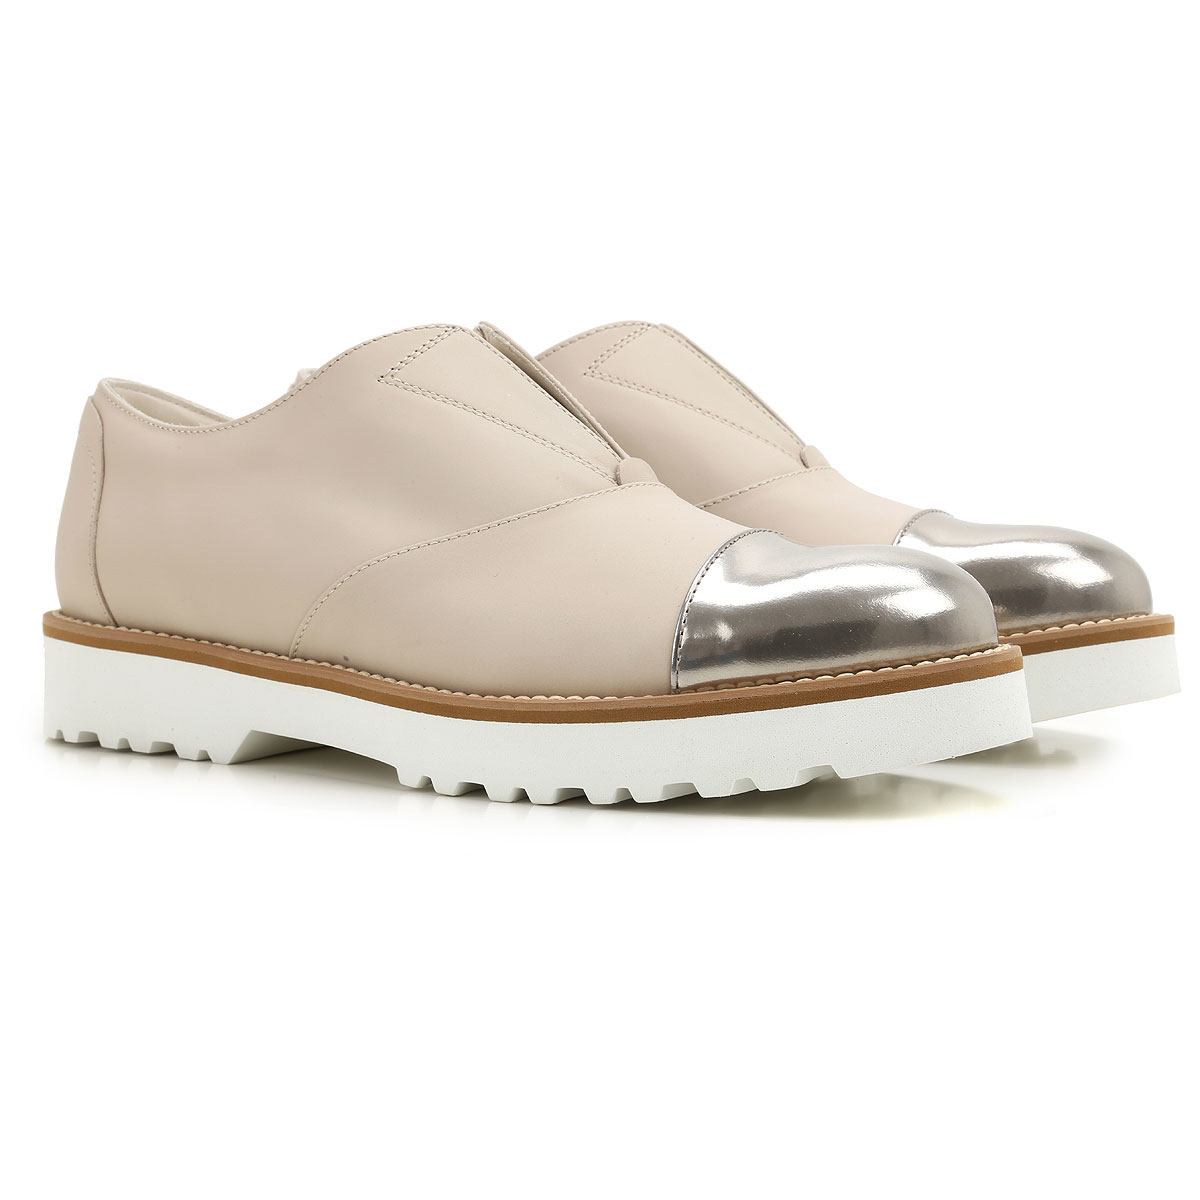 Hogan Loafers for Women On Sale in Outlet Beige DK - GOOFASH - Womens FLAT SHOES